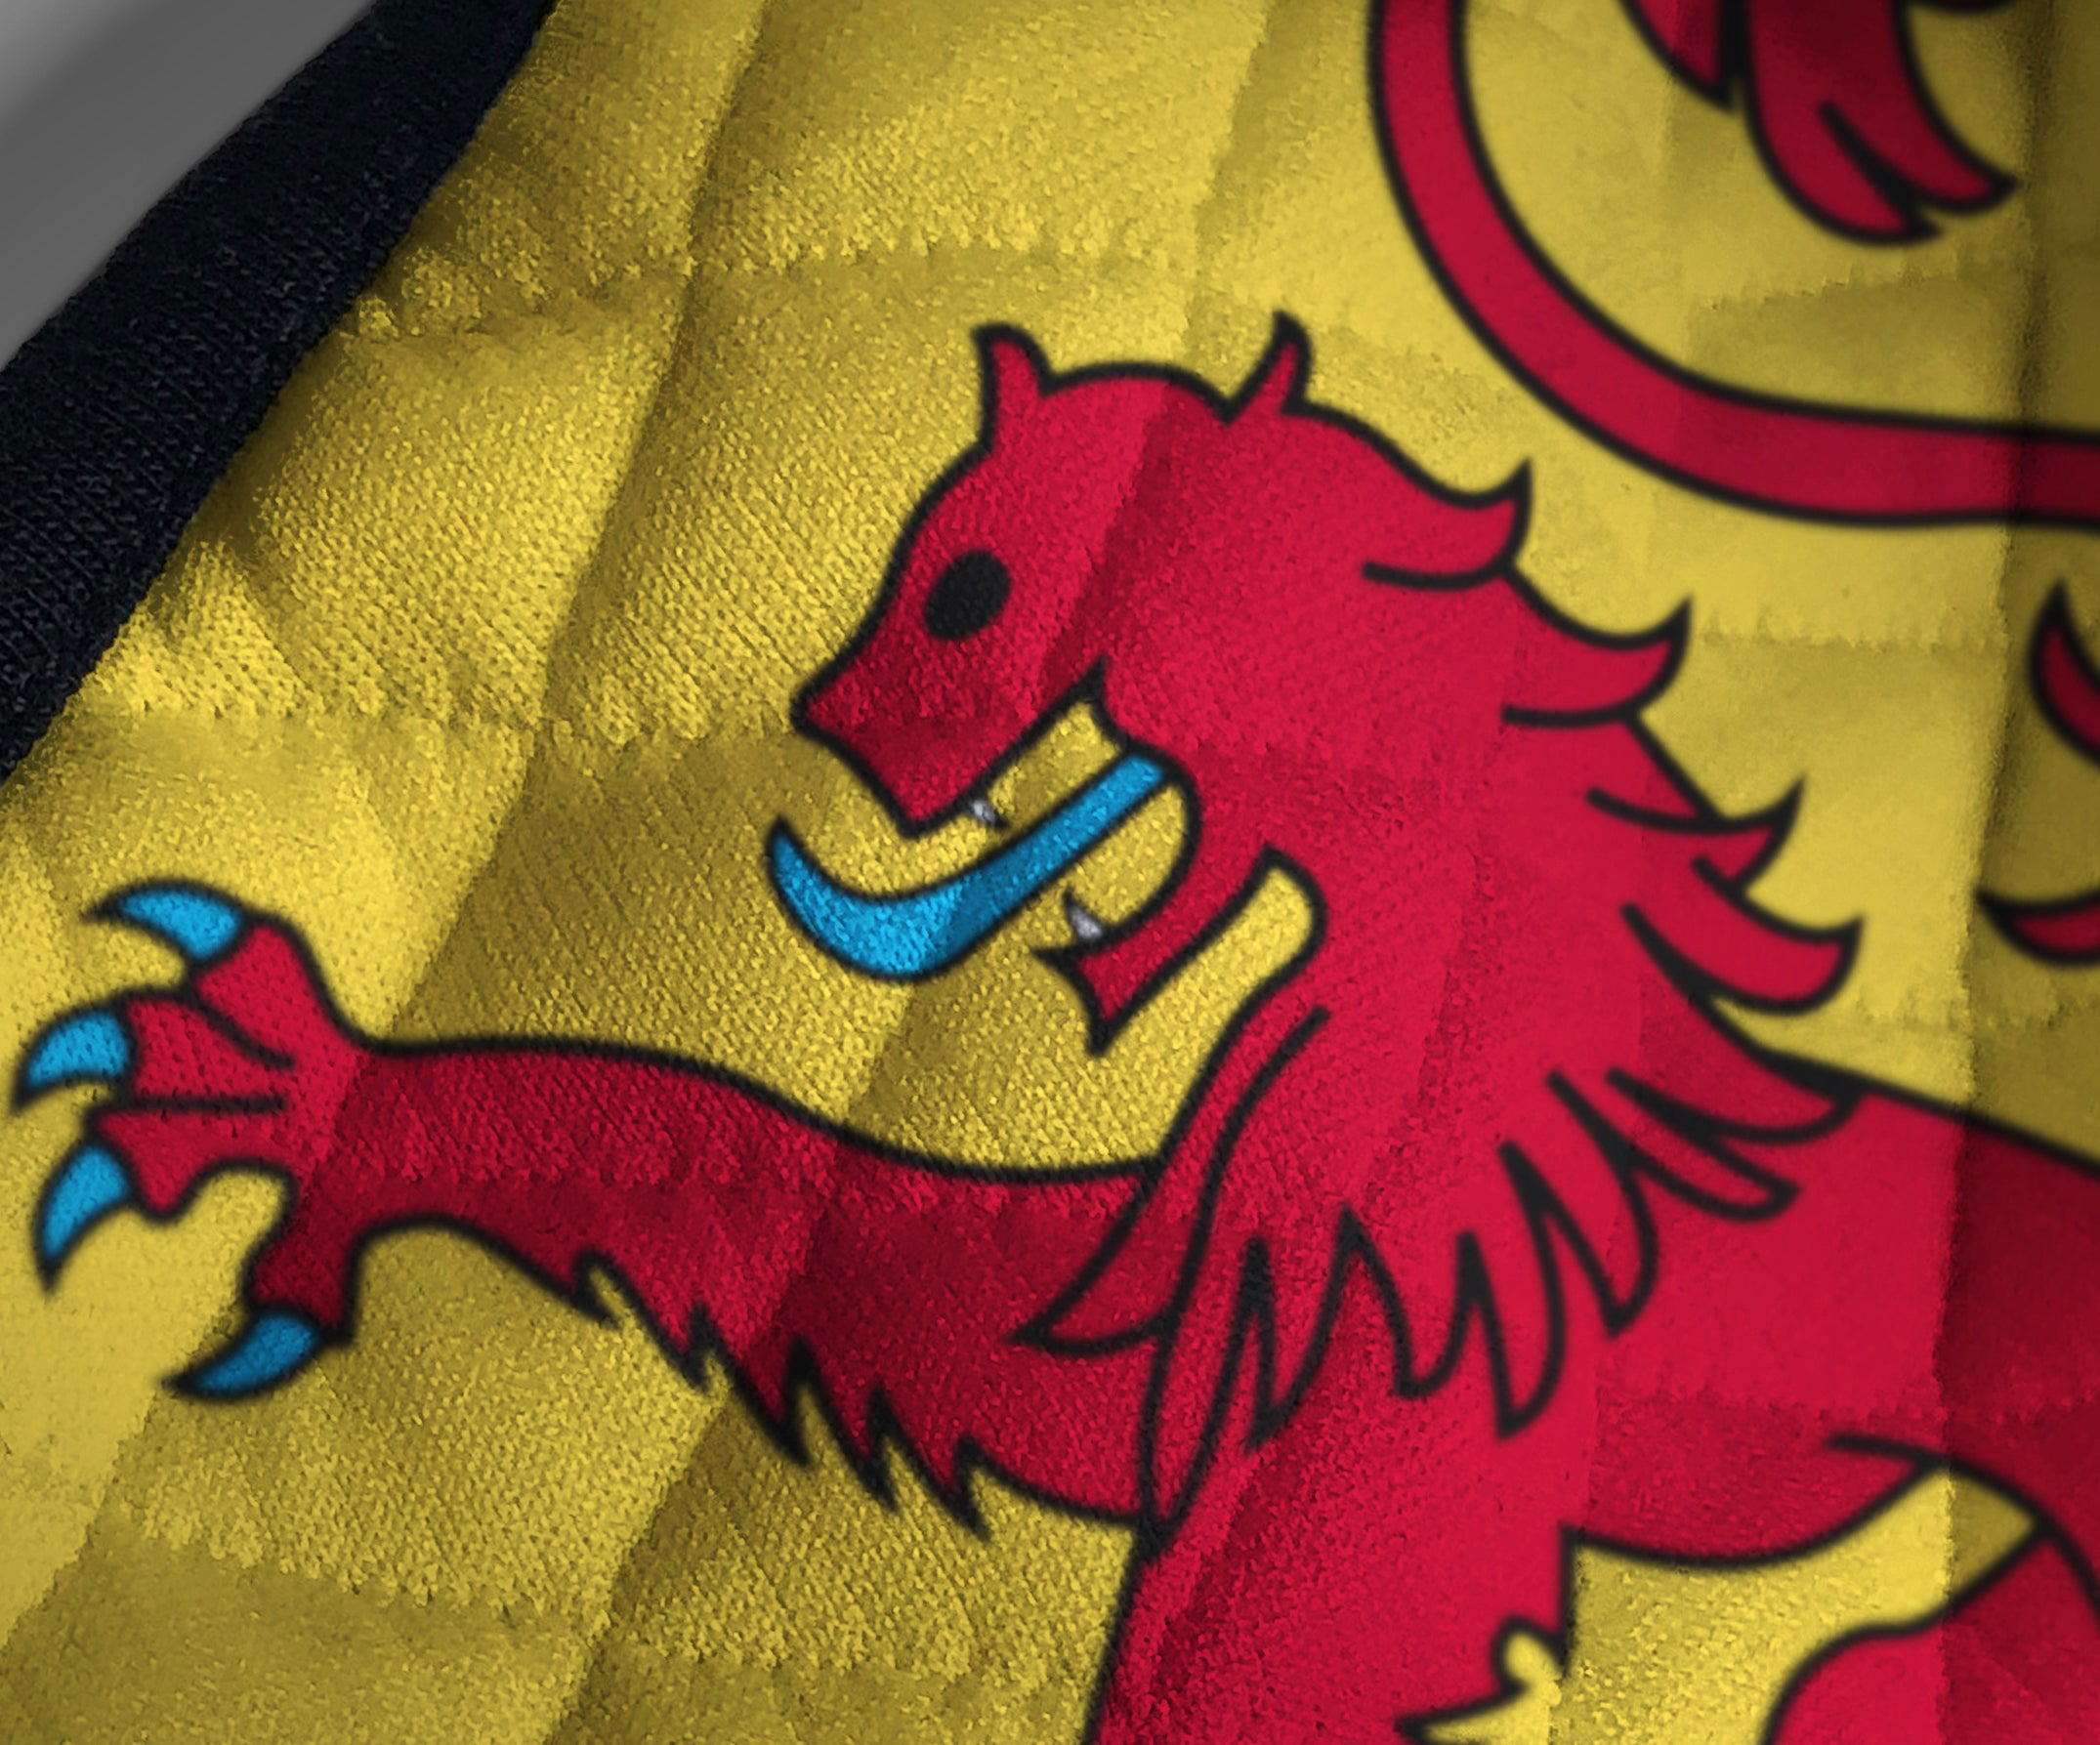 Contoured Face Mask - face covering - Nicola Sturgeon - Scottish Lion Rampant Royal Standard of Scotland - by Steven Patrick Sim the Tartan Artisan - Stevie Tartan Guy - printed fabric 1 - medium